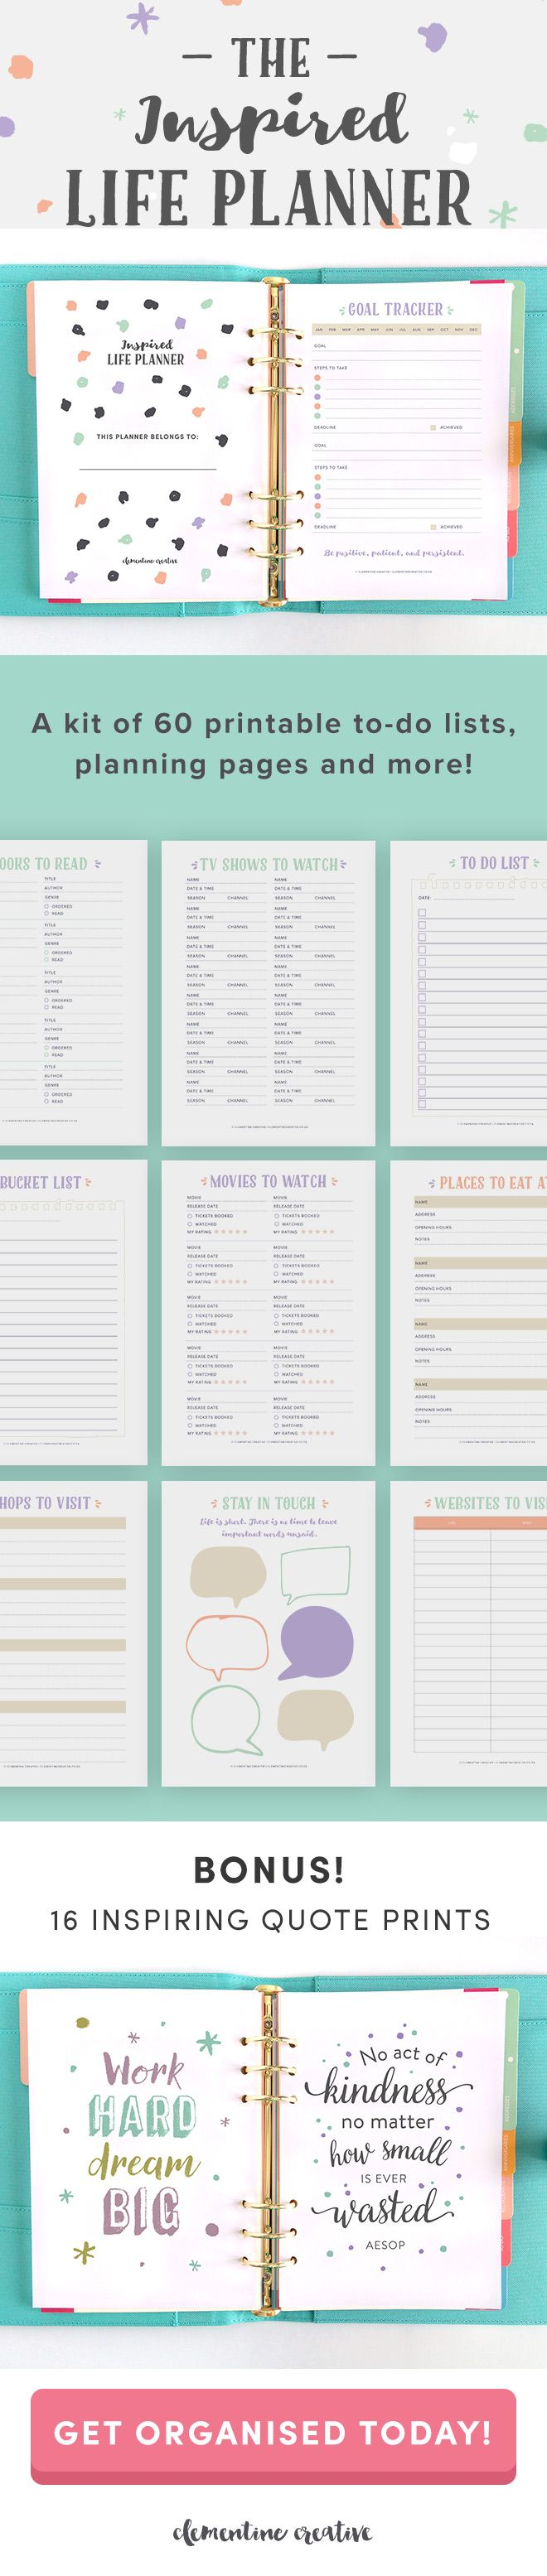 Need to get organised? Love making lists and planning your life on paper? The Inspired Life Planner is just what you need. It includes 60 printable planning pages to help you track your life, plan, and remember important things. It even includes 16 inspiring quote prints to help motivate you. Find out more here.